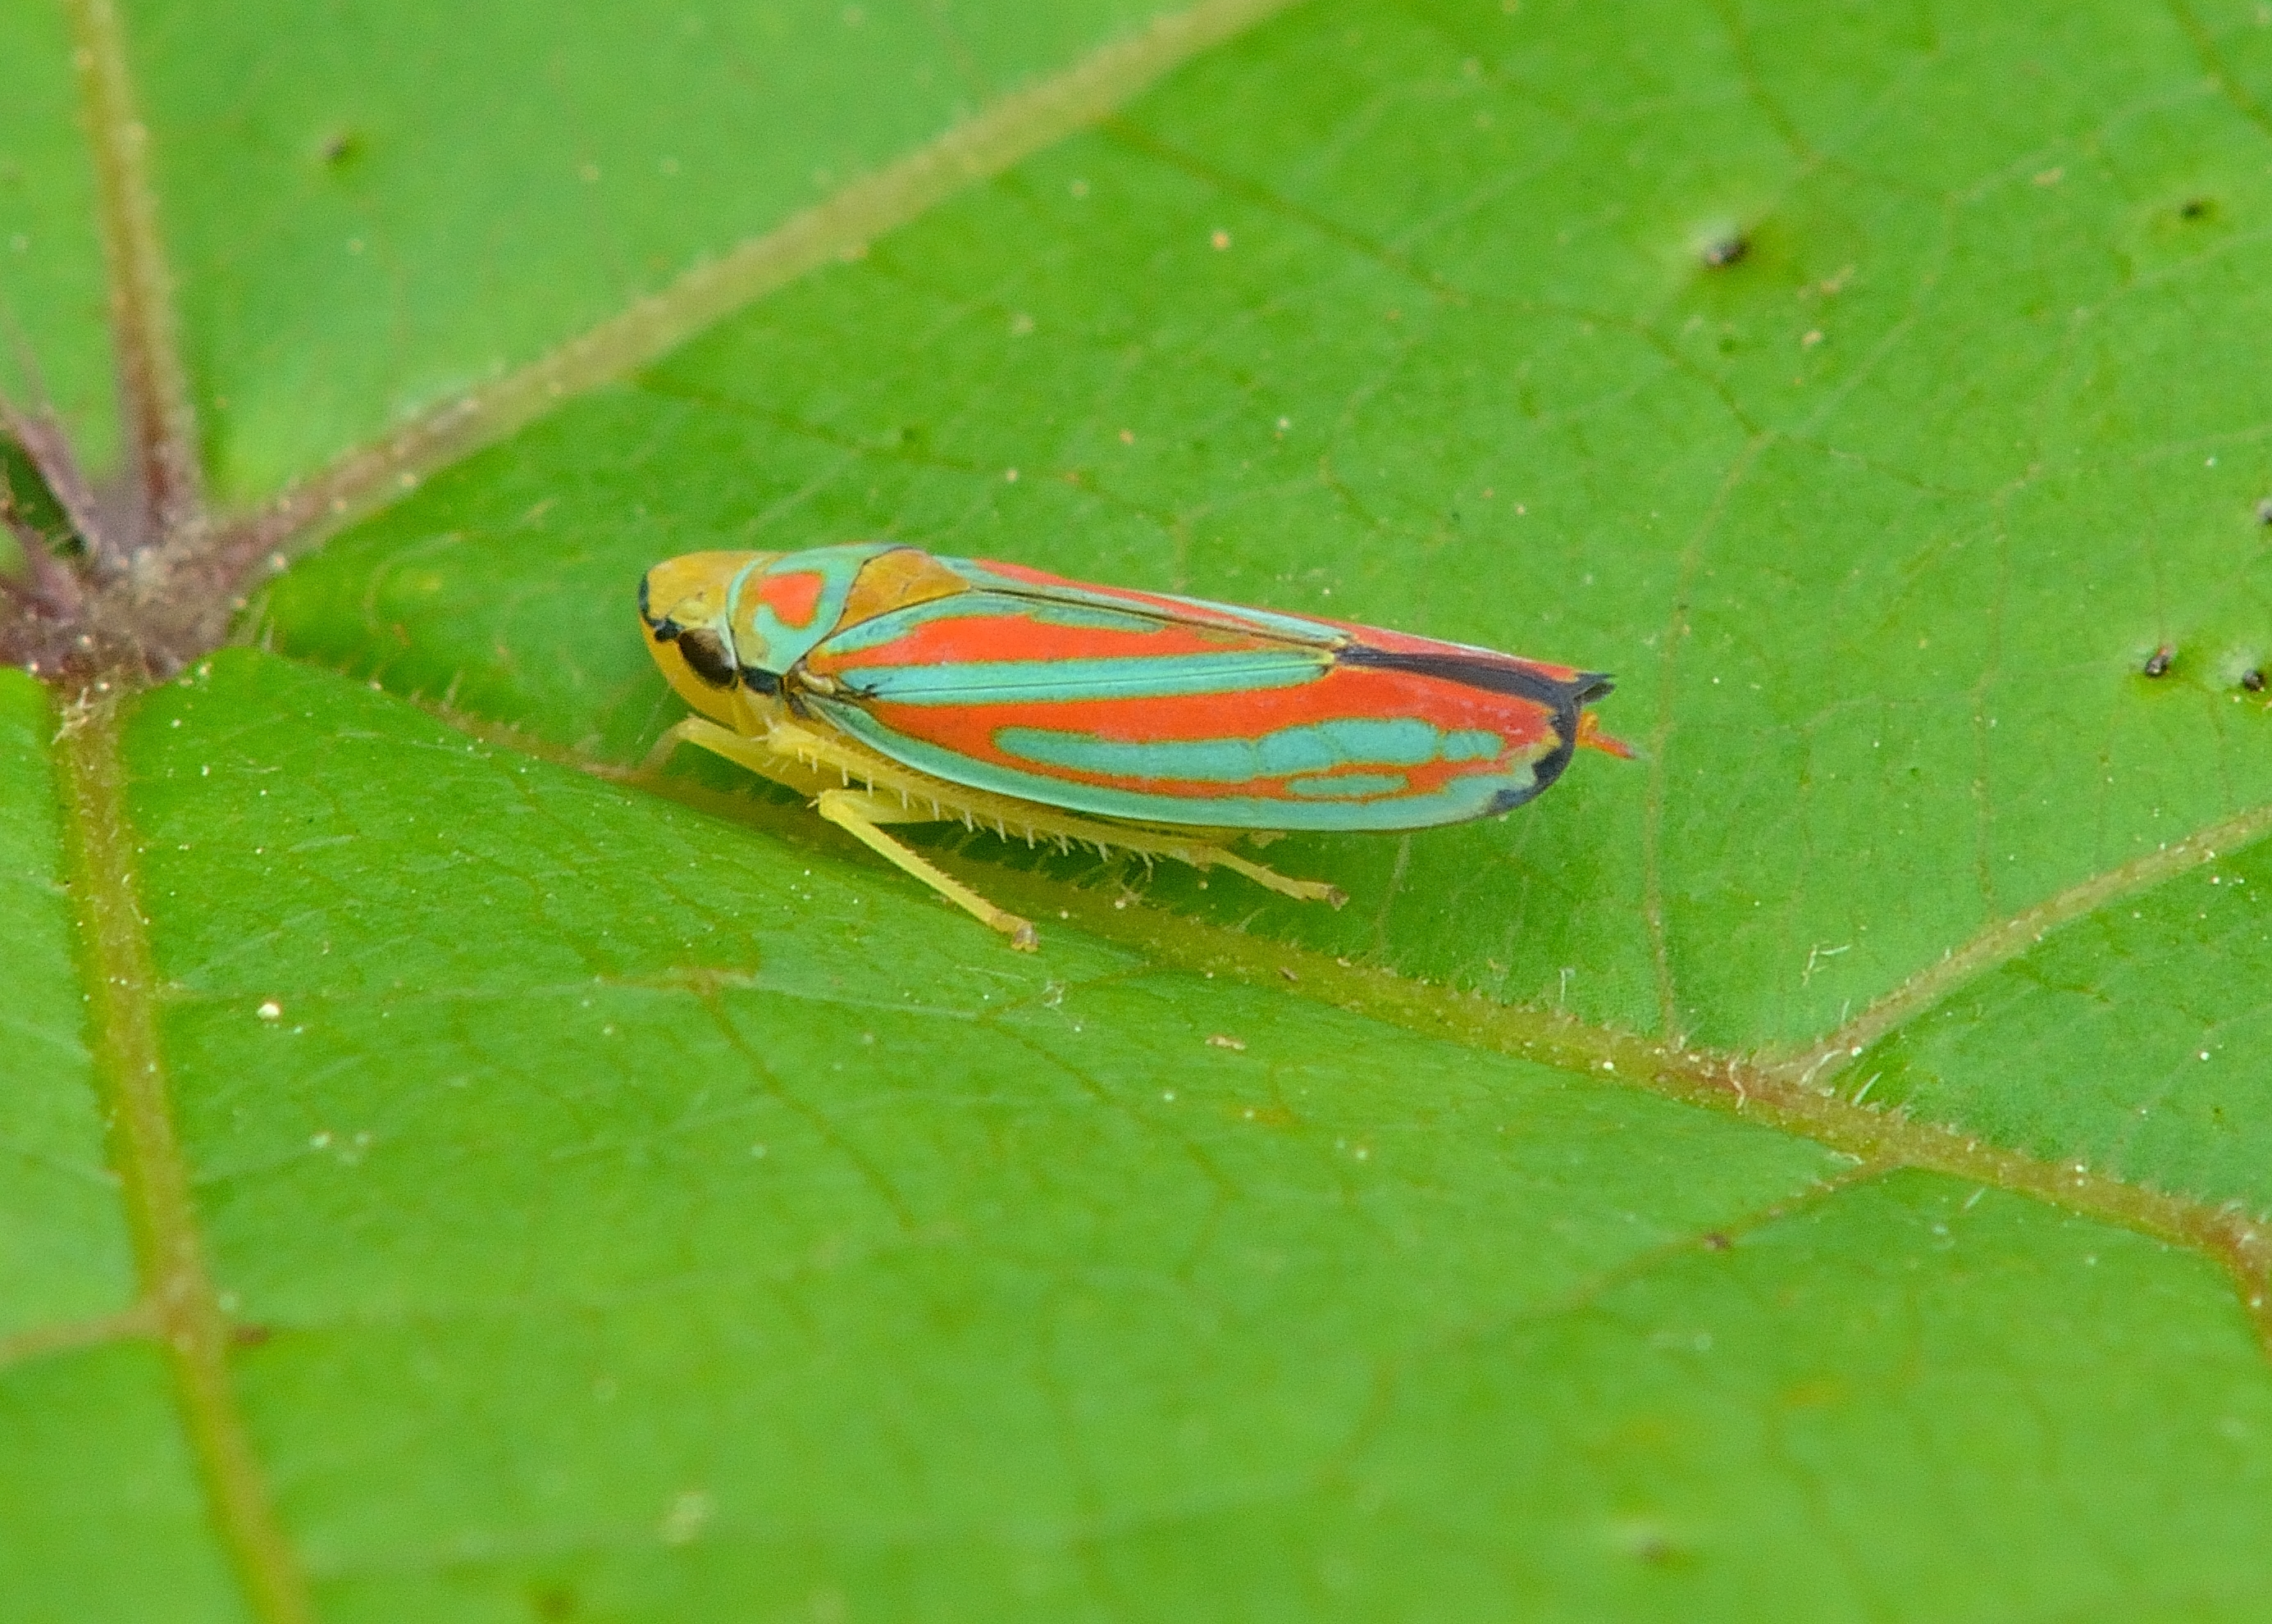 DSC_4995 candy-striped leafhopper 06 16 16 bill moses